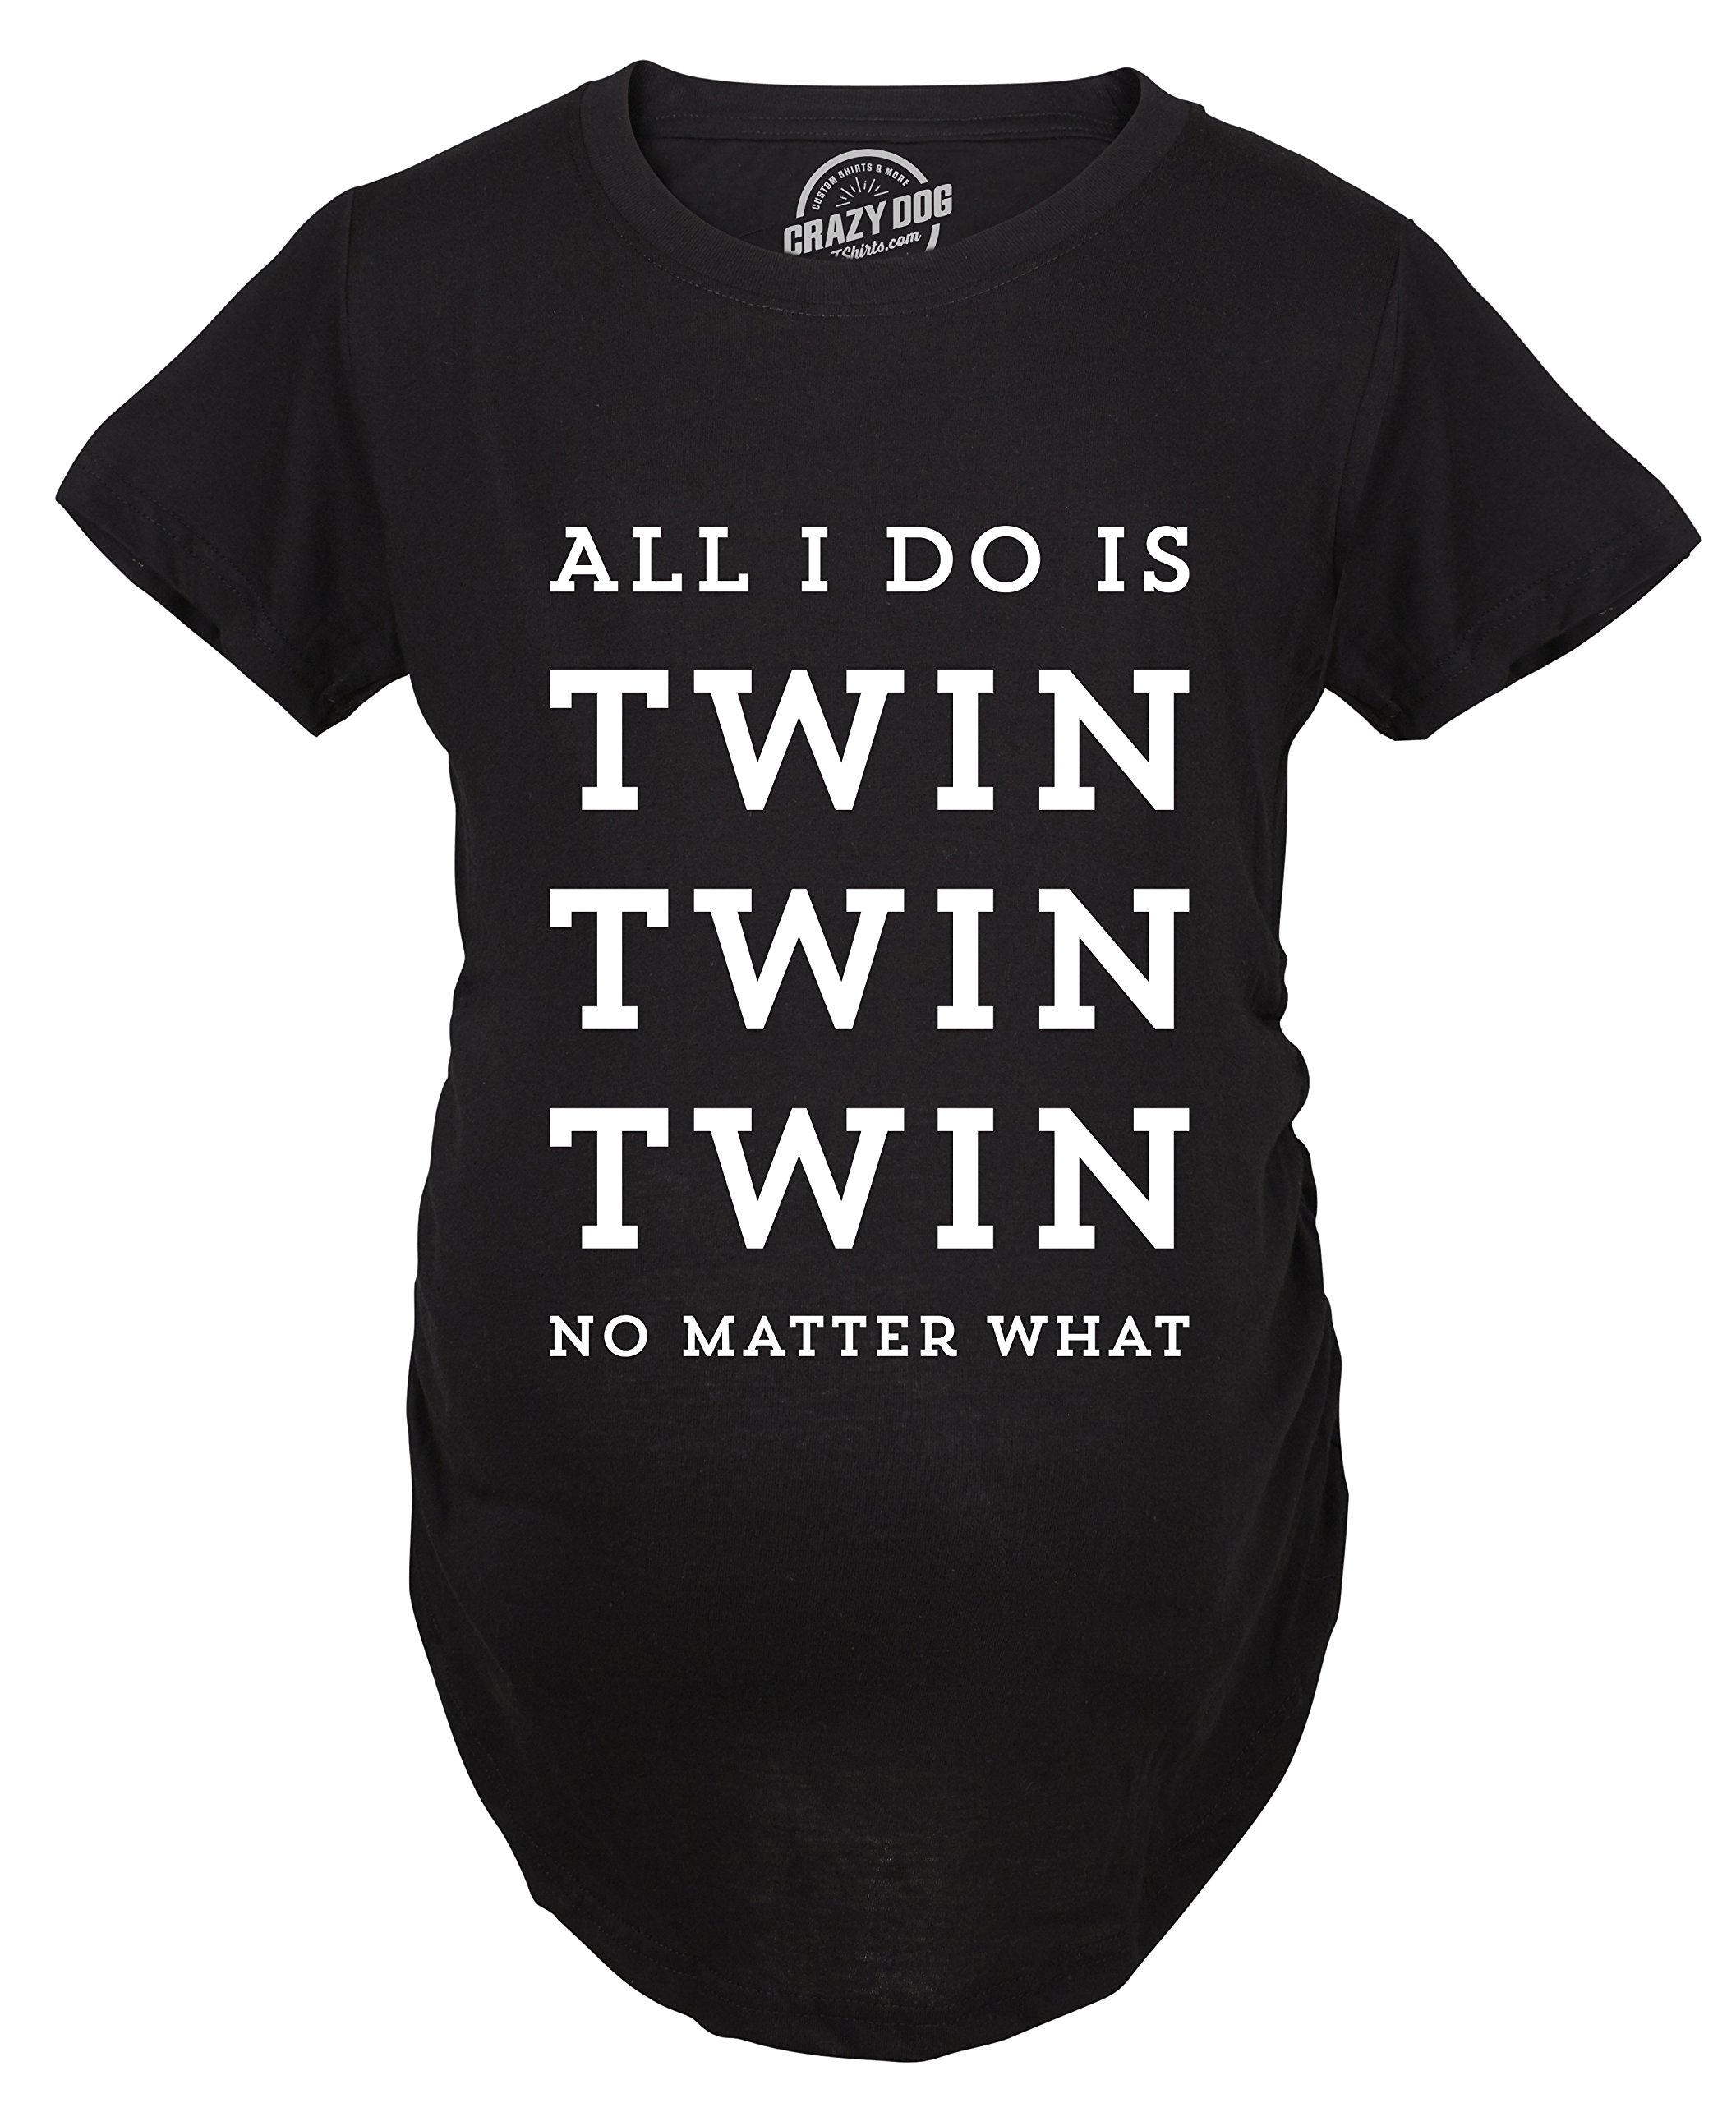 Crazy Dog T-Shirts Maternity All I Do is Twin Twin Twin No Matter What Tshirt Funny Rap Lyrics Pregnancy Tee -XL